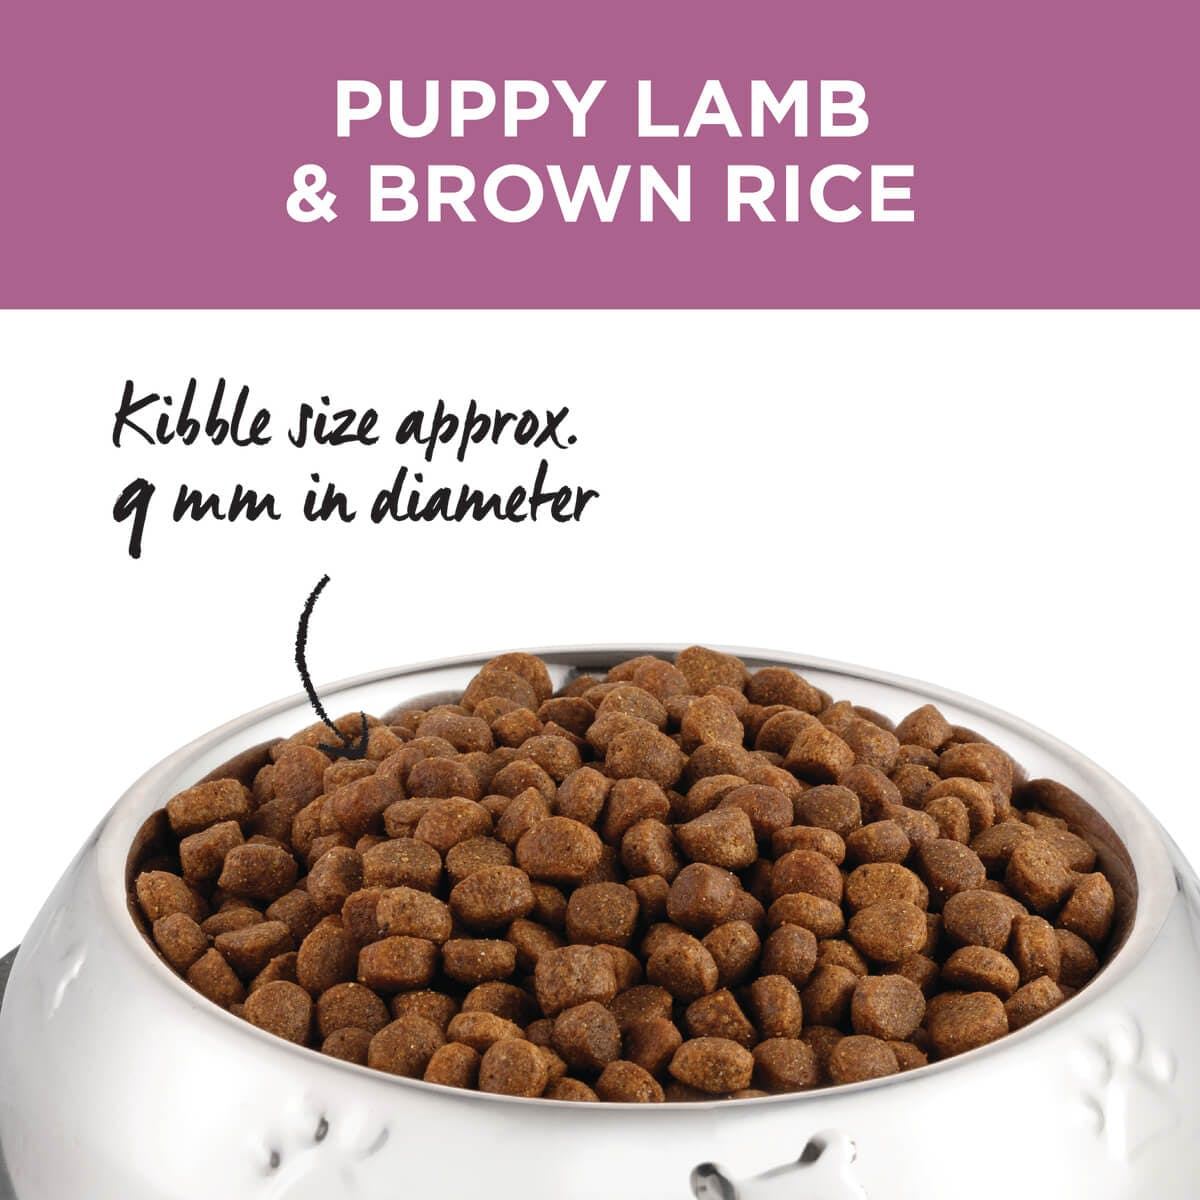 Ivory Coat | Dry Puppy Lamb & Brown Rice 2.5kg | Dry Dog Food | Top of pack